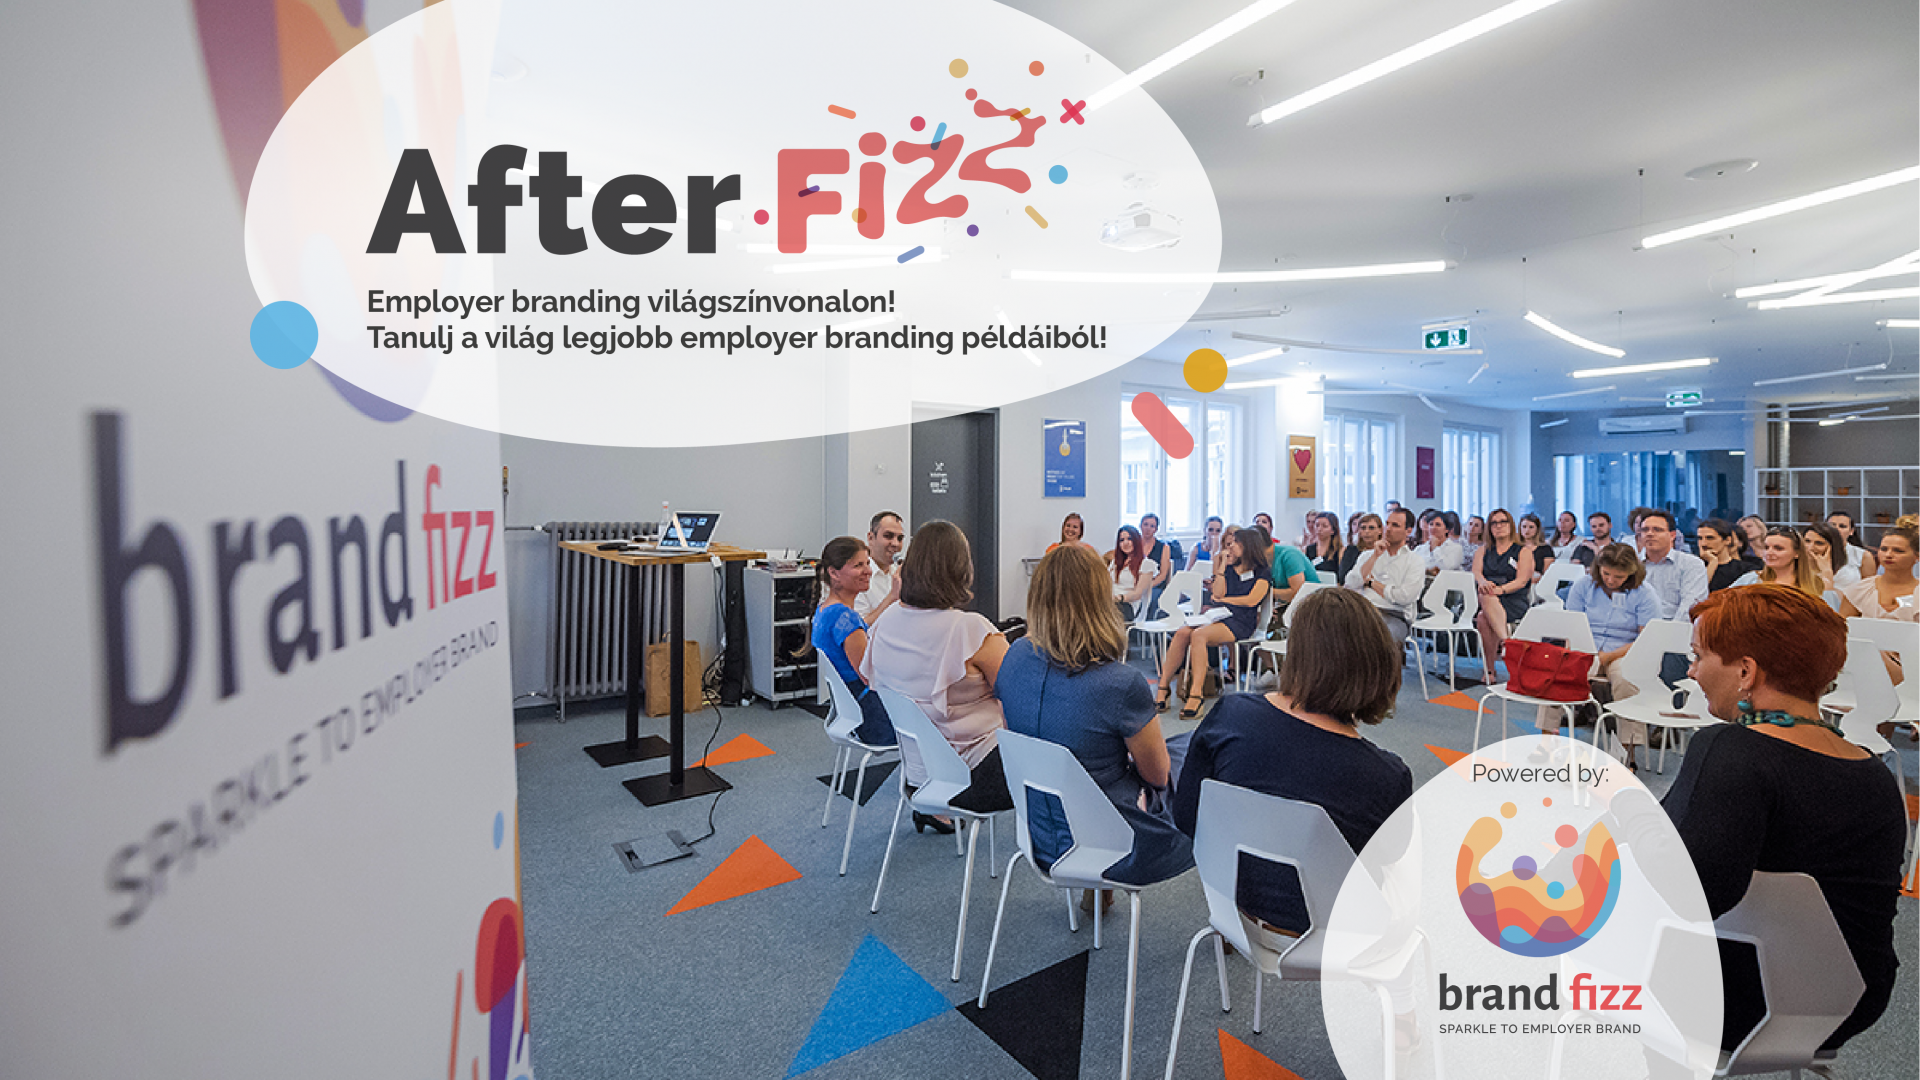 Afterfizz! Employer branding világszínvonalon!